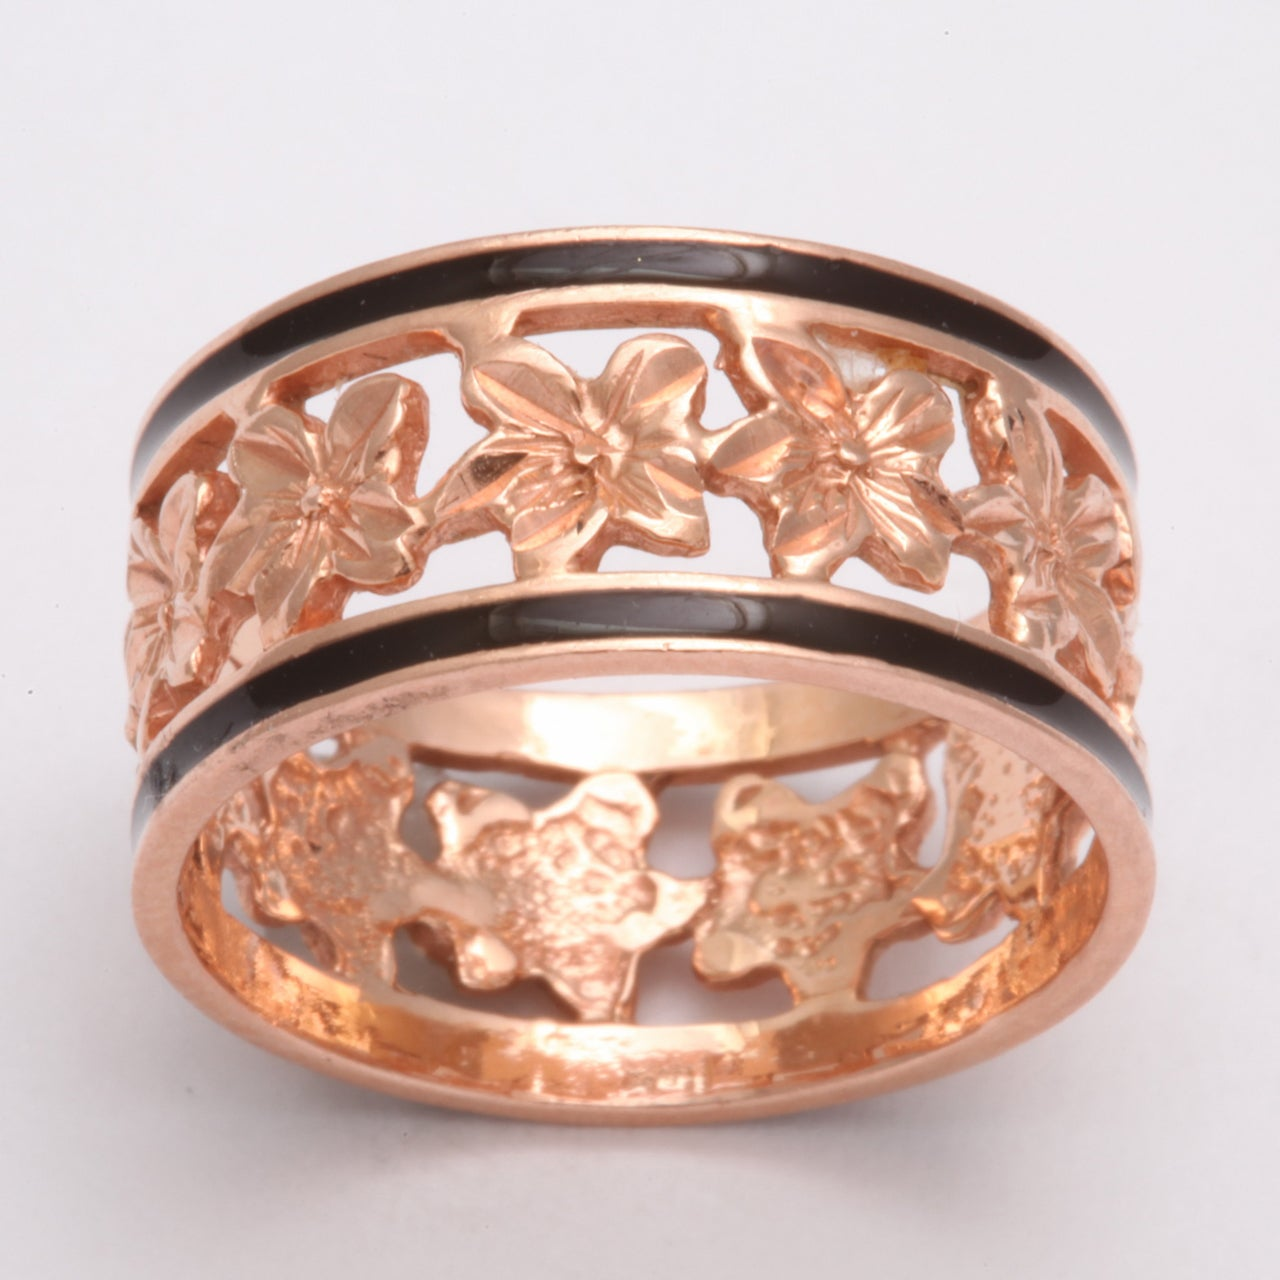 A band ring made in the United States in 14 Kt gold wraps ivy leaves around the finger. Ivy clings and intertwines in endless attachment which makes this a meaningful ring for lovers. The borders are emboldened with black enamel giving definition to